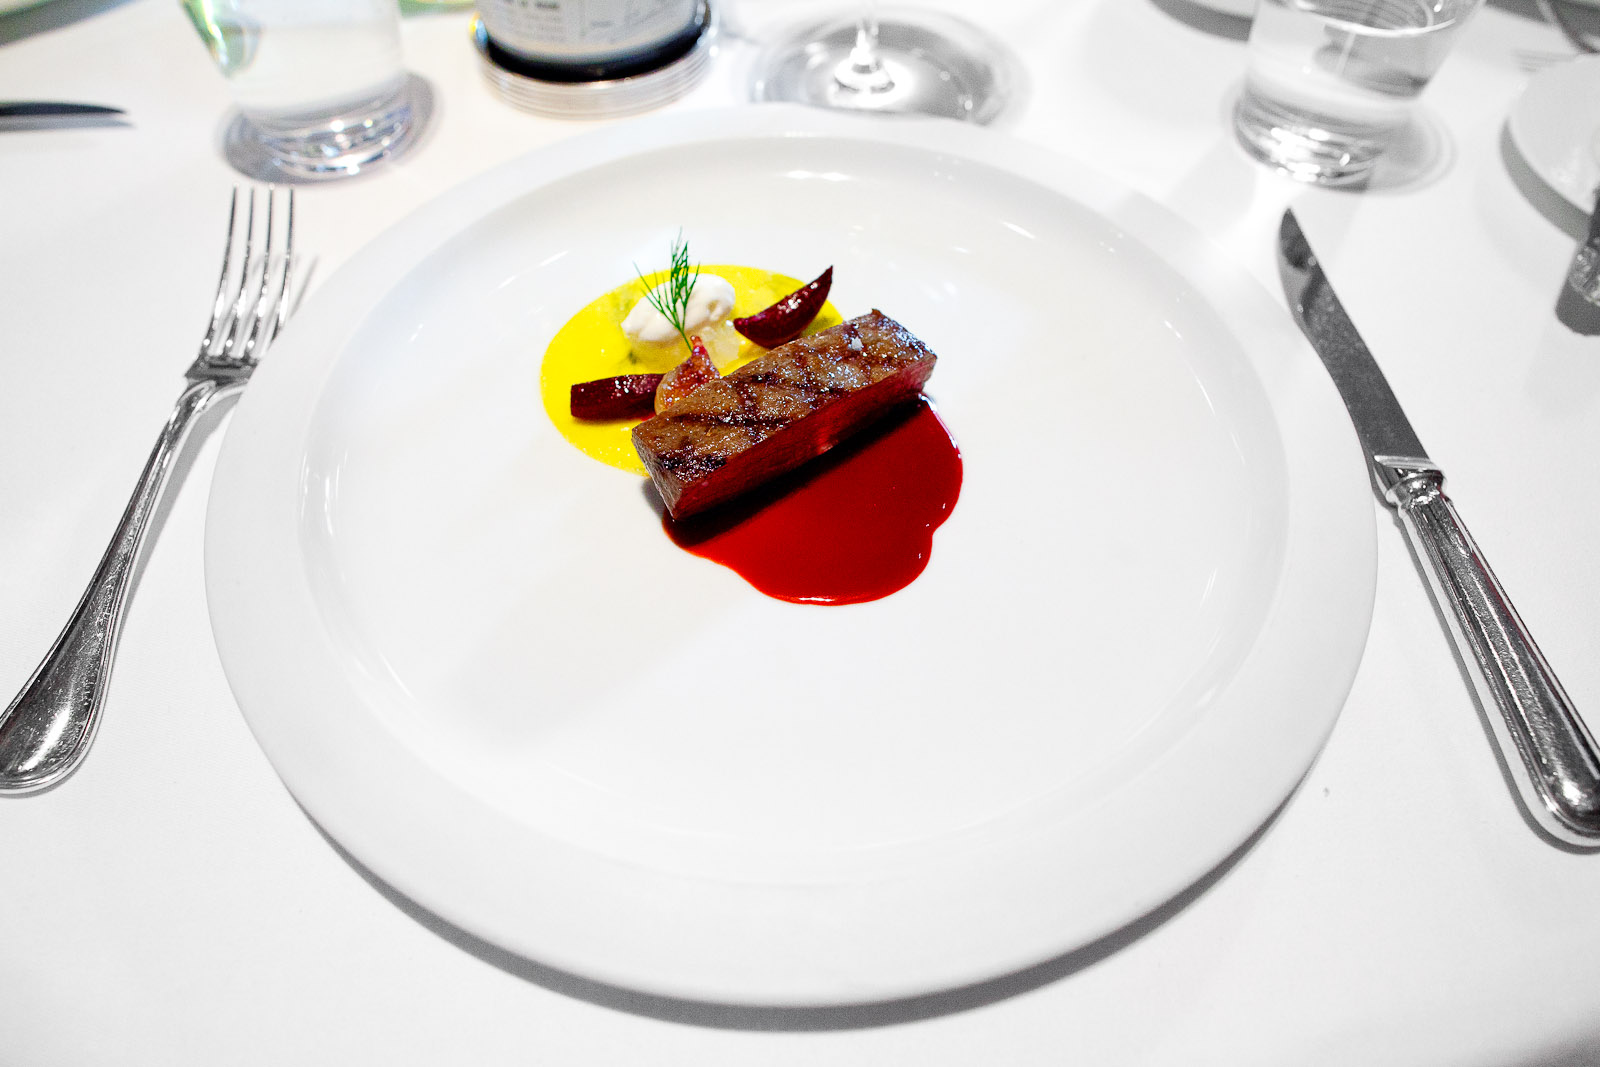 """7th Course - Snake River Farms """"Calotte de Bœuf Grillée,"""" Dill Pasta, Red Beets, Horseradish Mousse, Roasted Shallot and """"Sauce Borscht"""""""